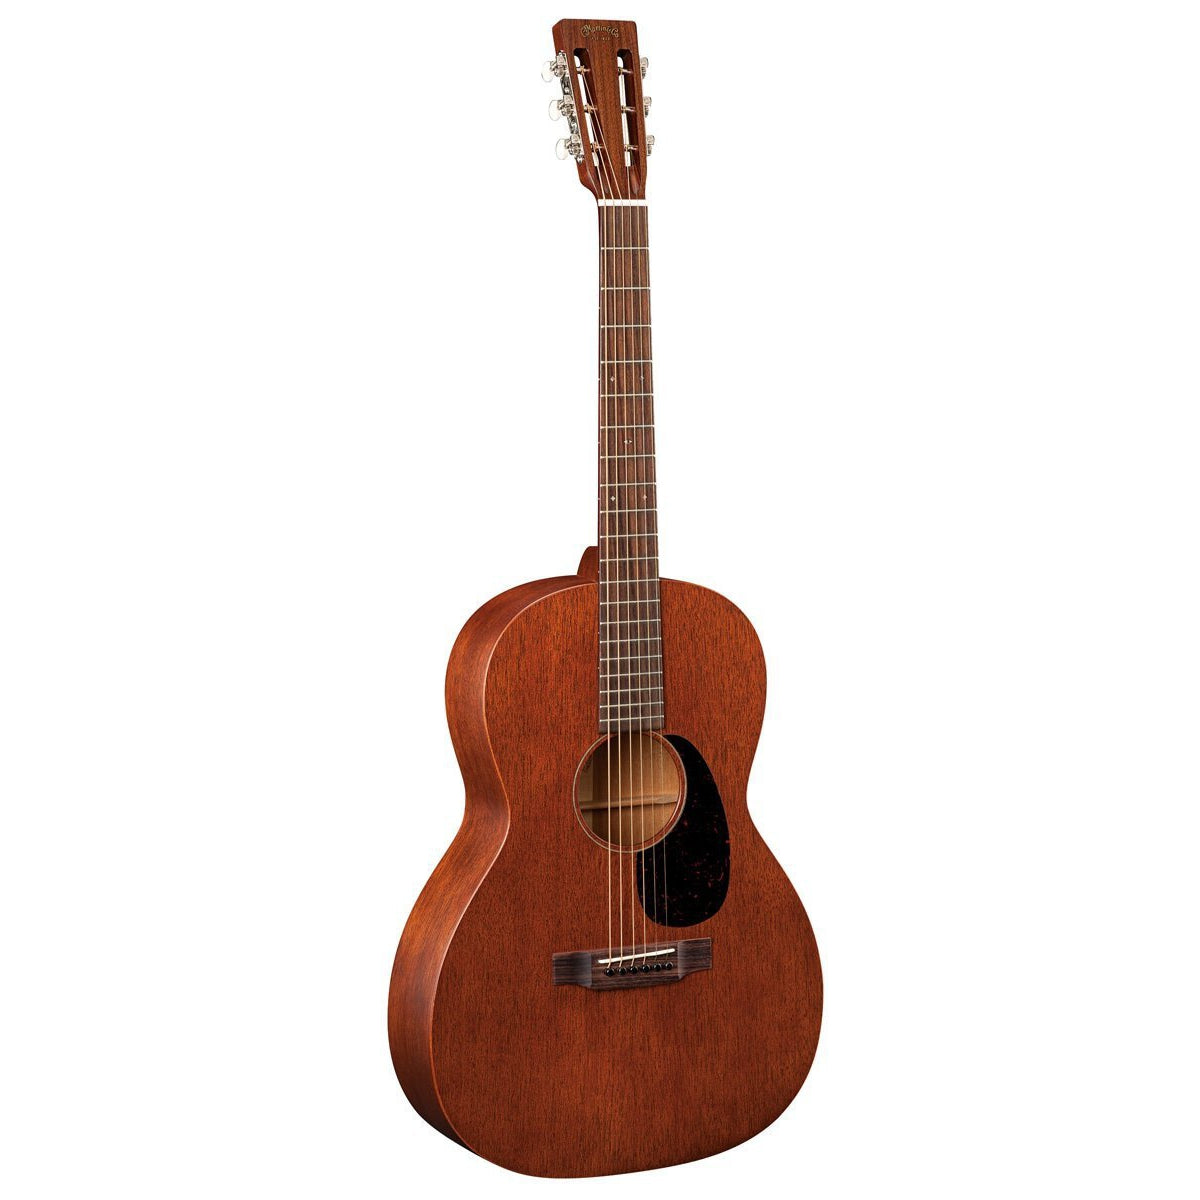 Martin 000-15SM Acoustic Guitar (with Case), Natural